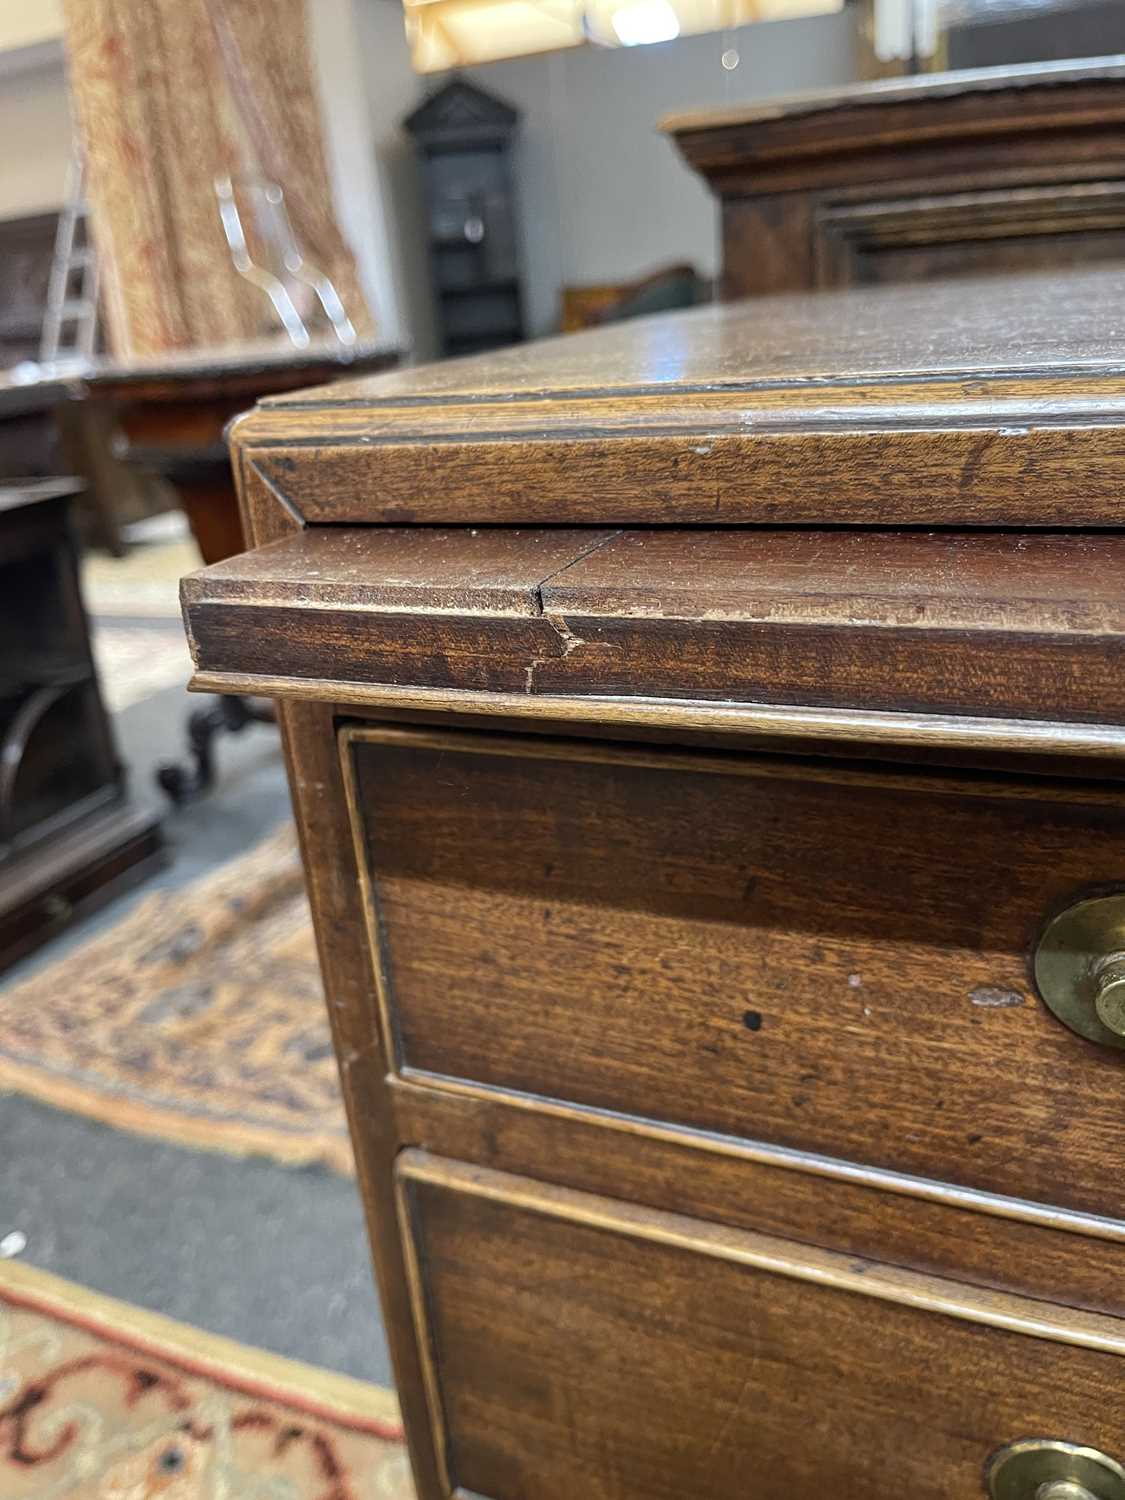 A George III mahogany caddy-top chest of drawers, - Image 8 of 48